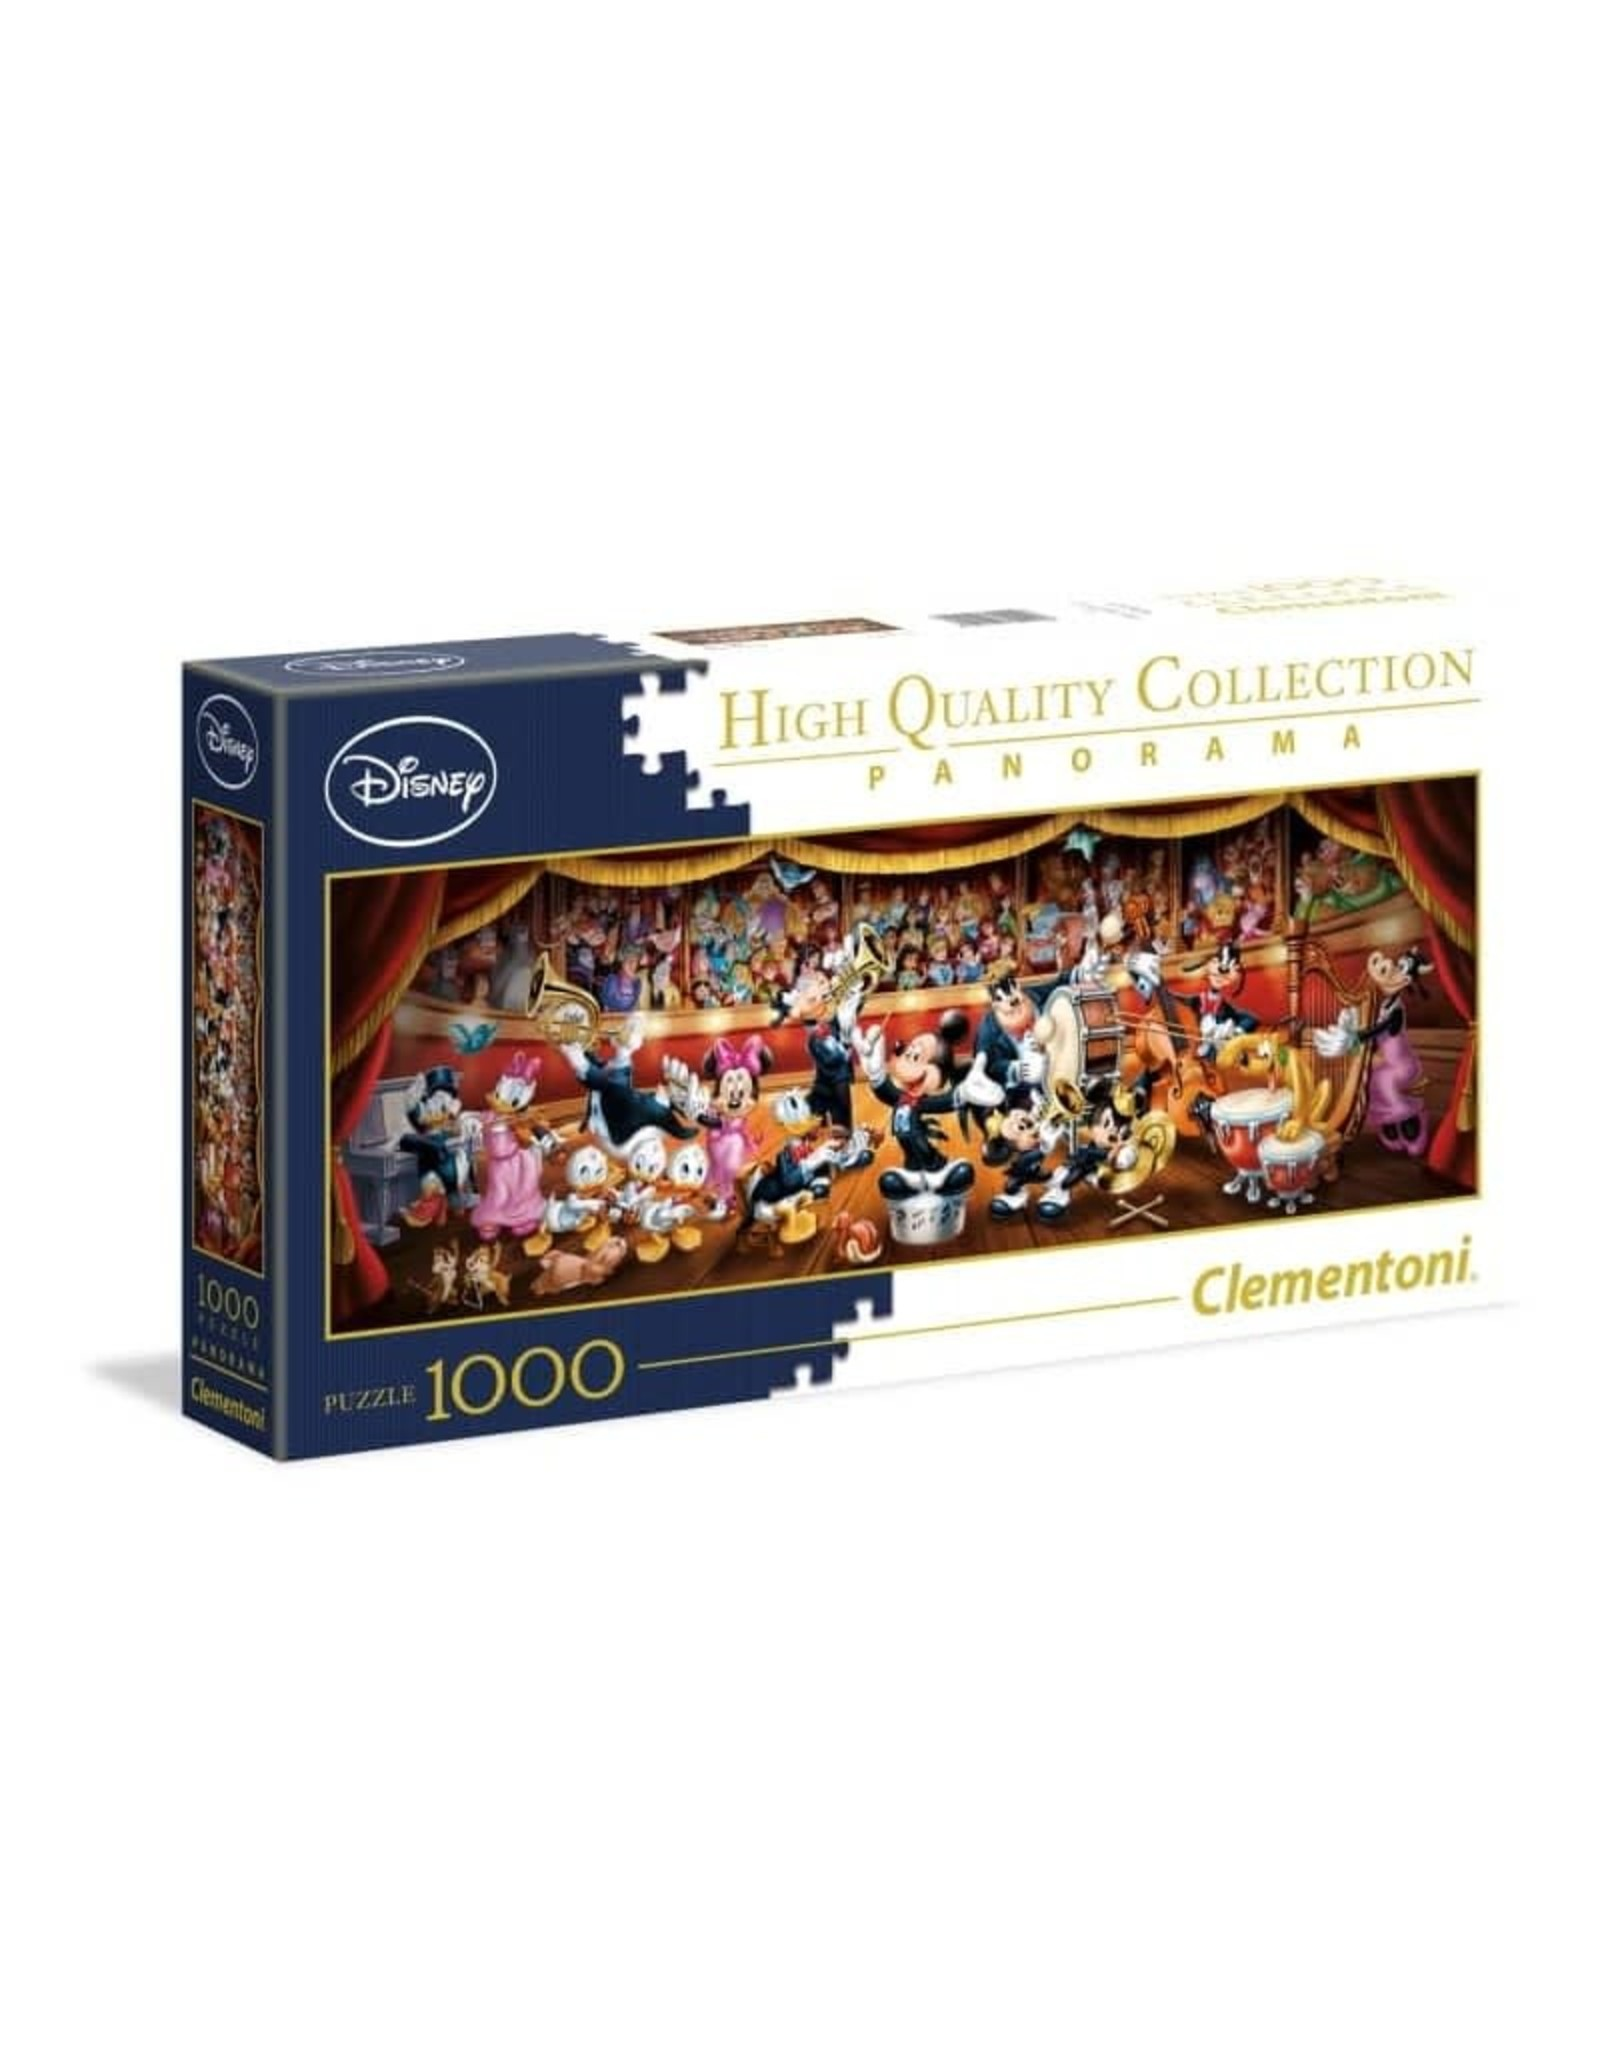 Clementoni MICKEY MOUSE Puzzle 1000P - Orchestra